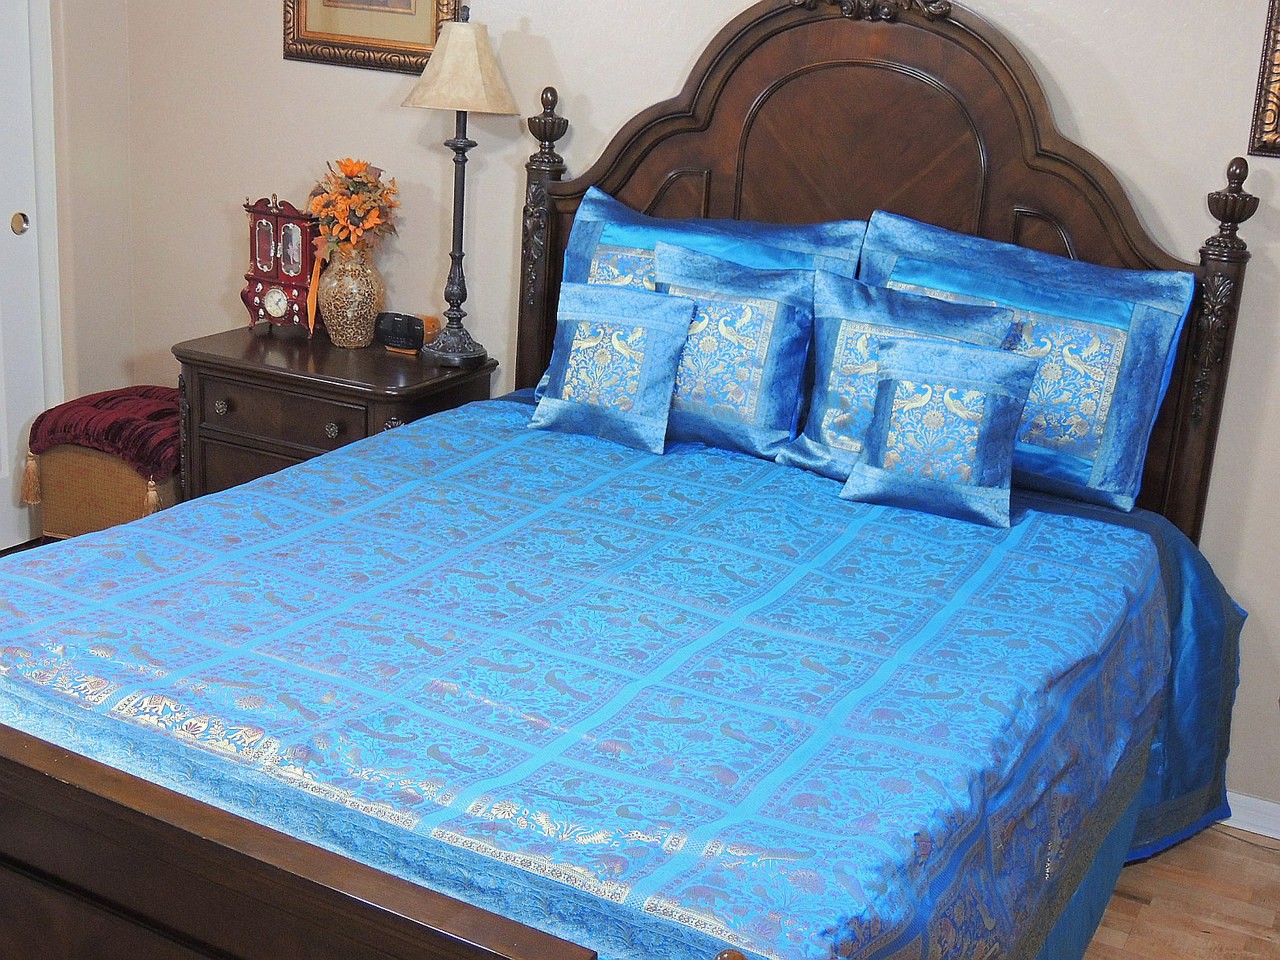 Peacock Colors Bedroom Peacock Color Themed Bedroom Bedroom On Pinterest Peacock Peacock